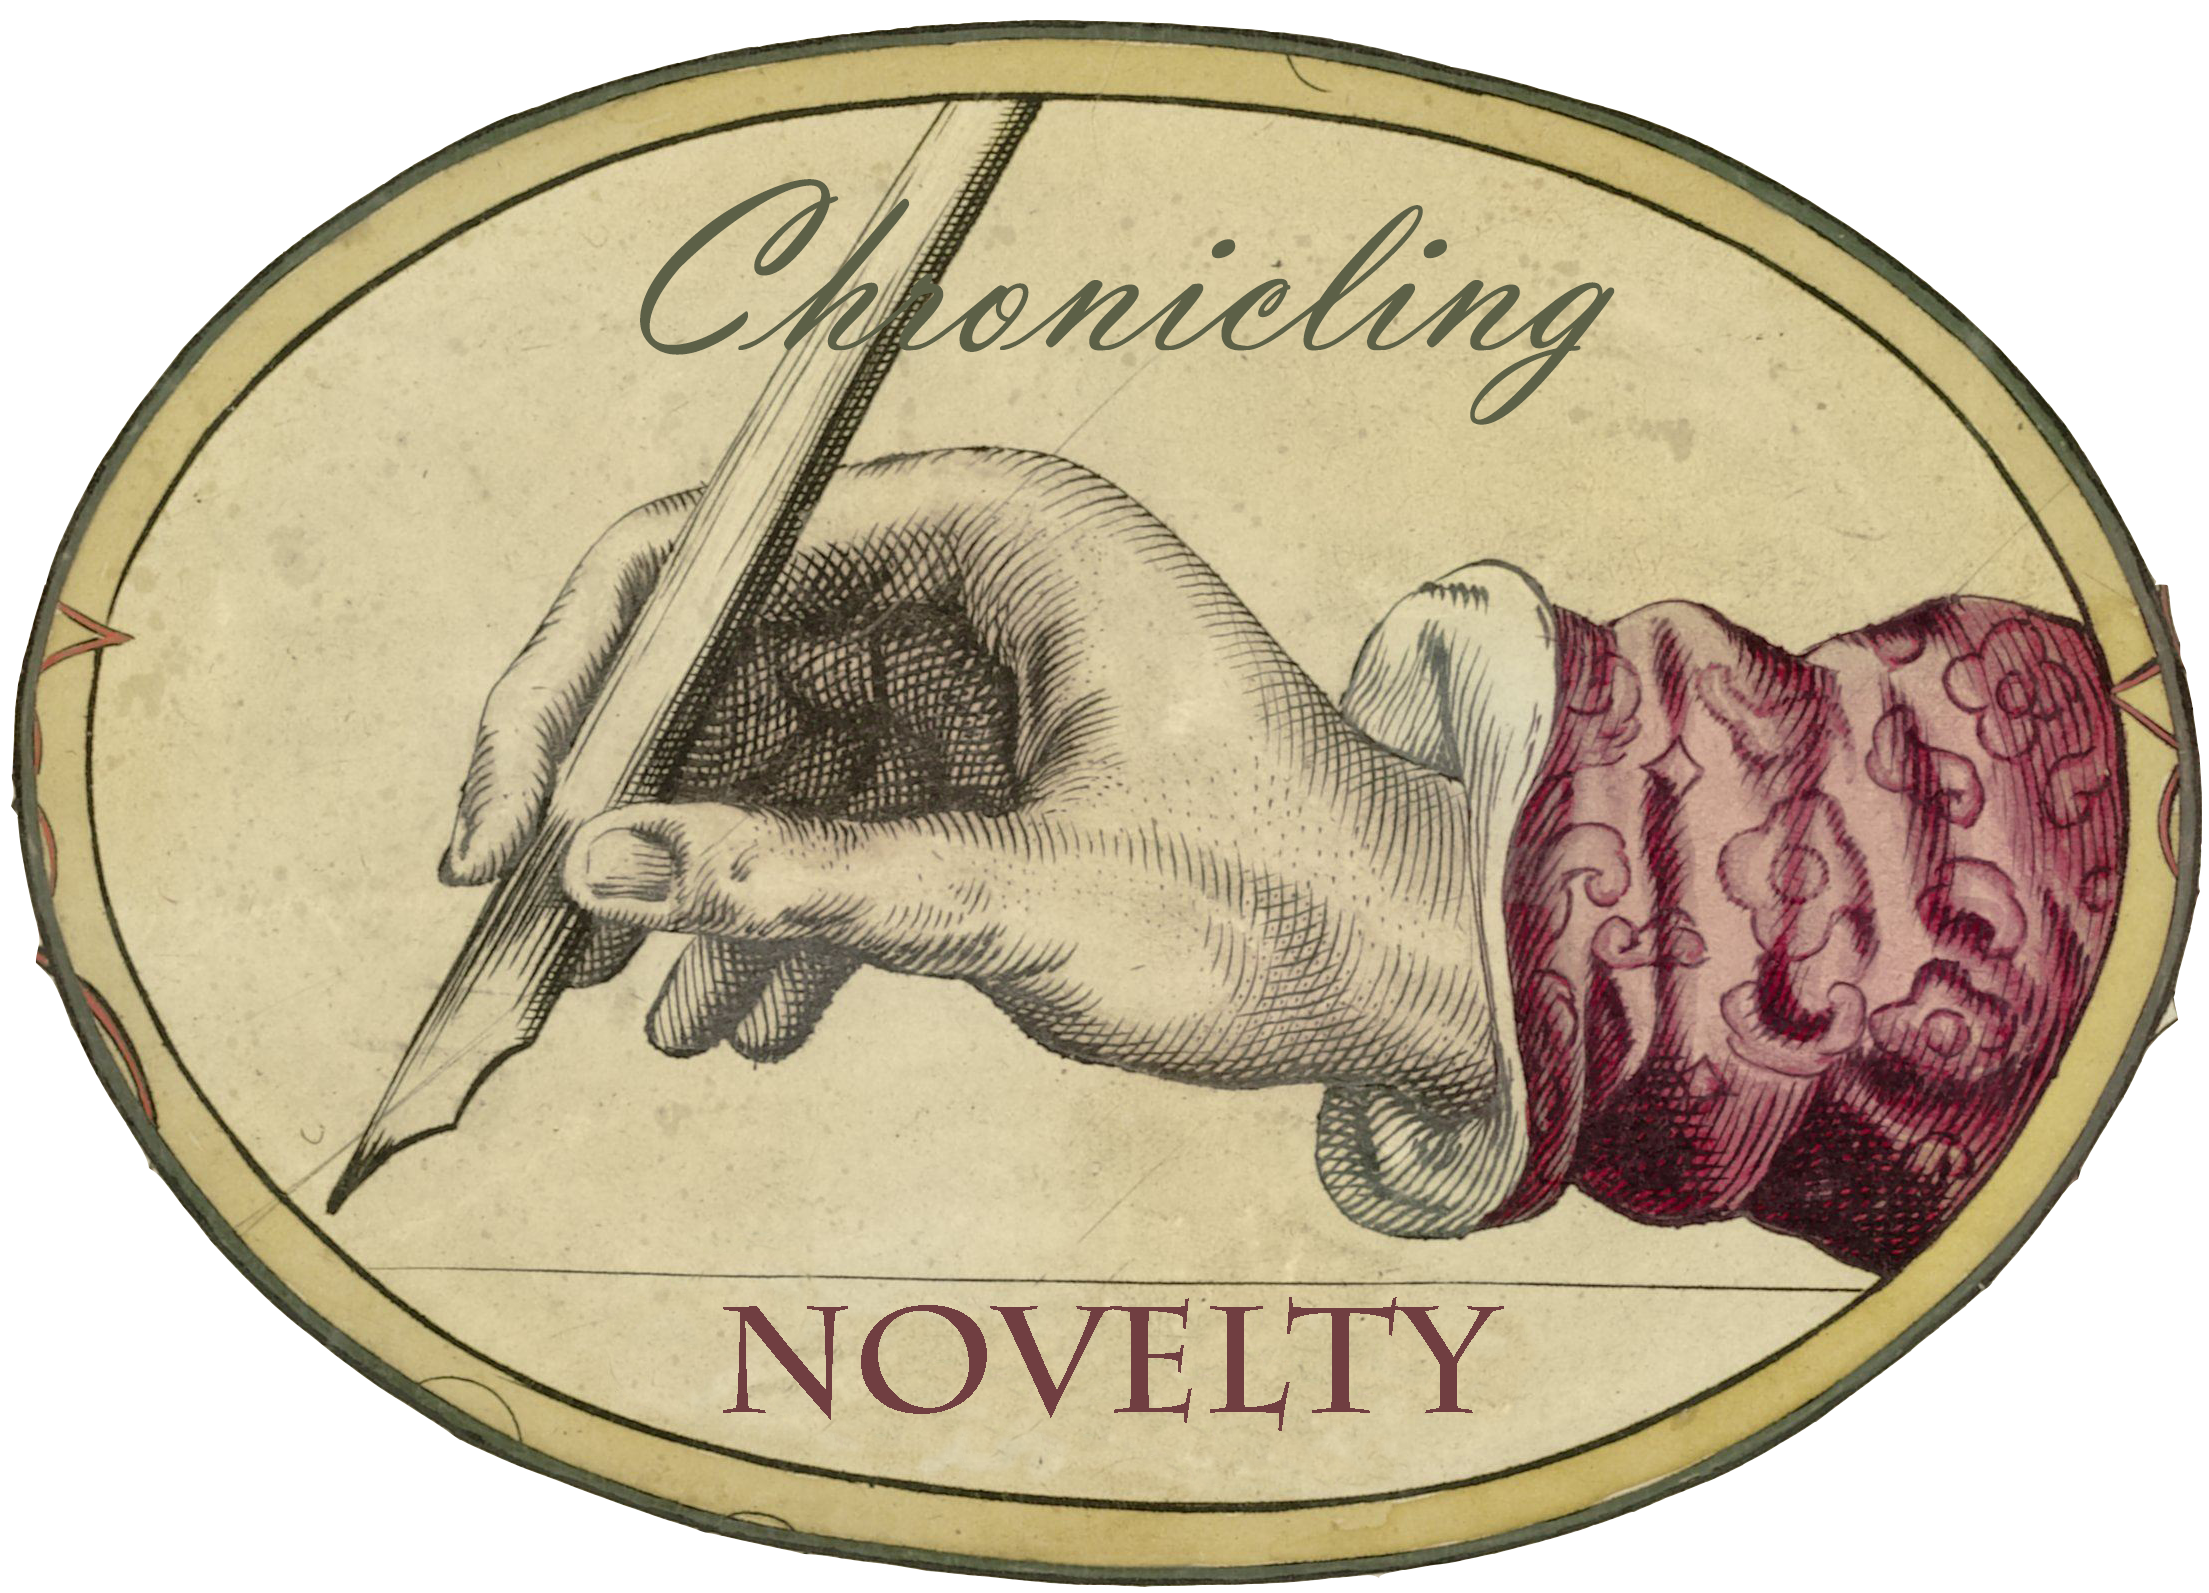 Chronicling Novelty